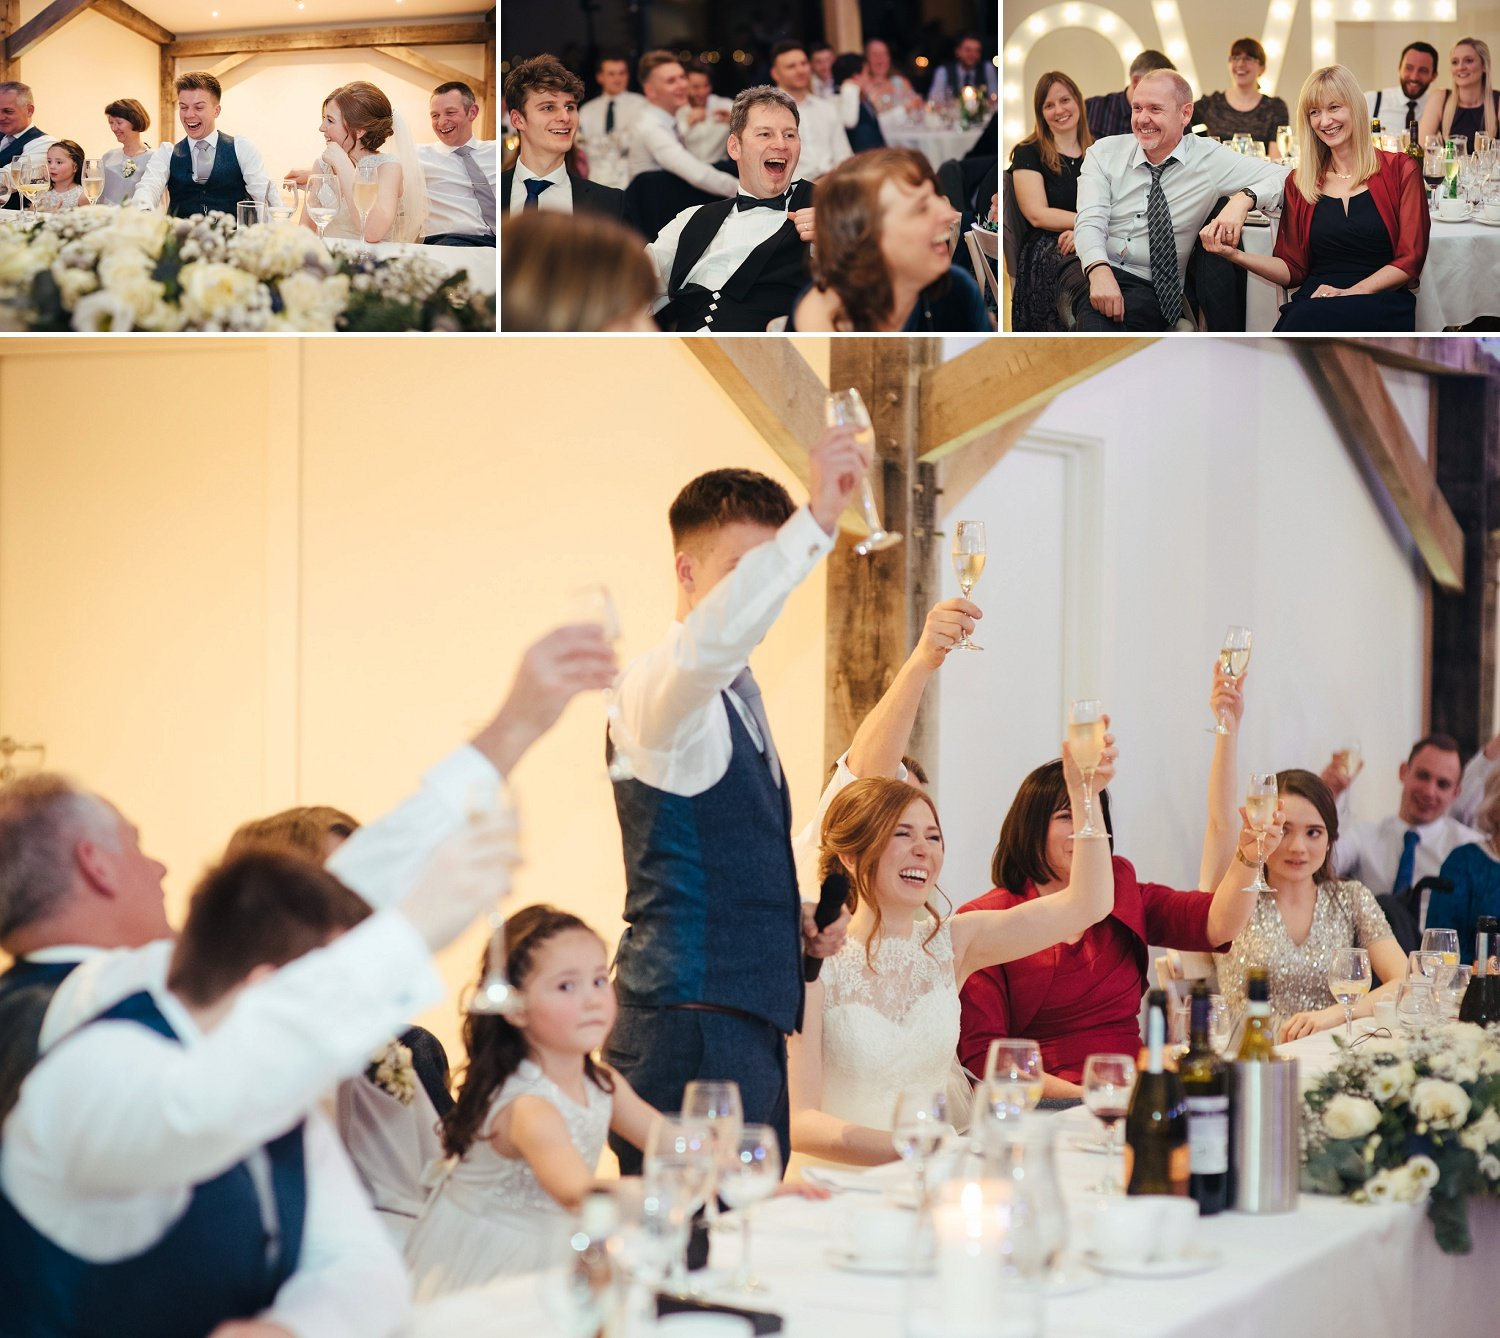 Entire top table toasting for the bride and groom at a contemporary barn wedding venue in Herefordshire